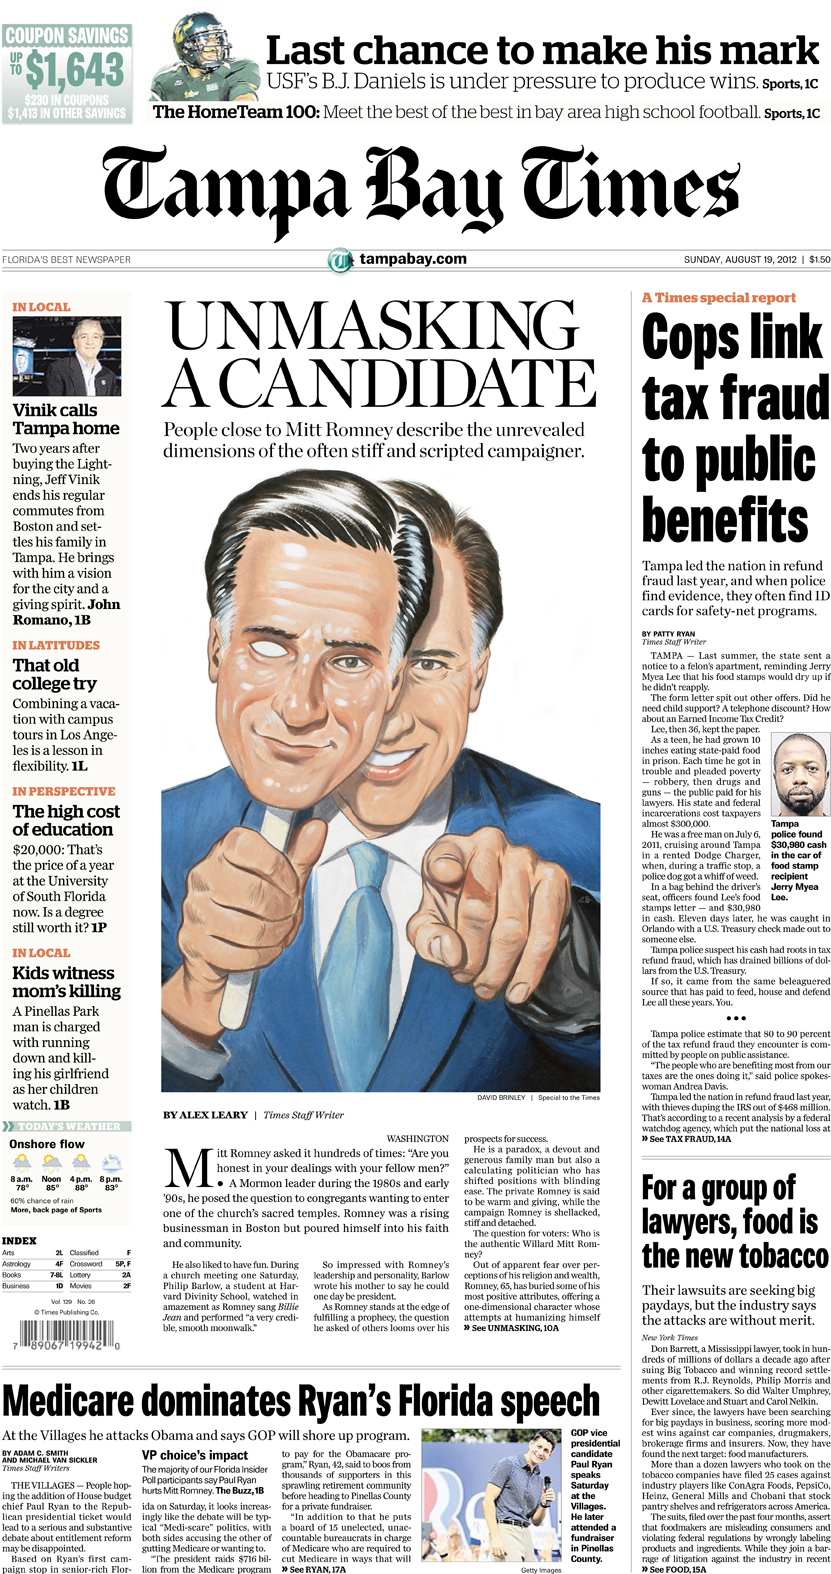 'Mitt Romney: Unmasking a Candidate'   | The Tampa Bay Times editorial portrait